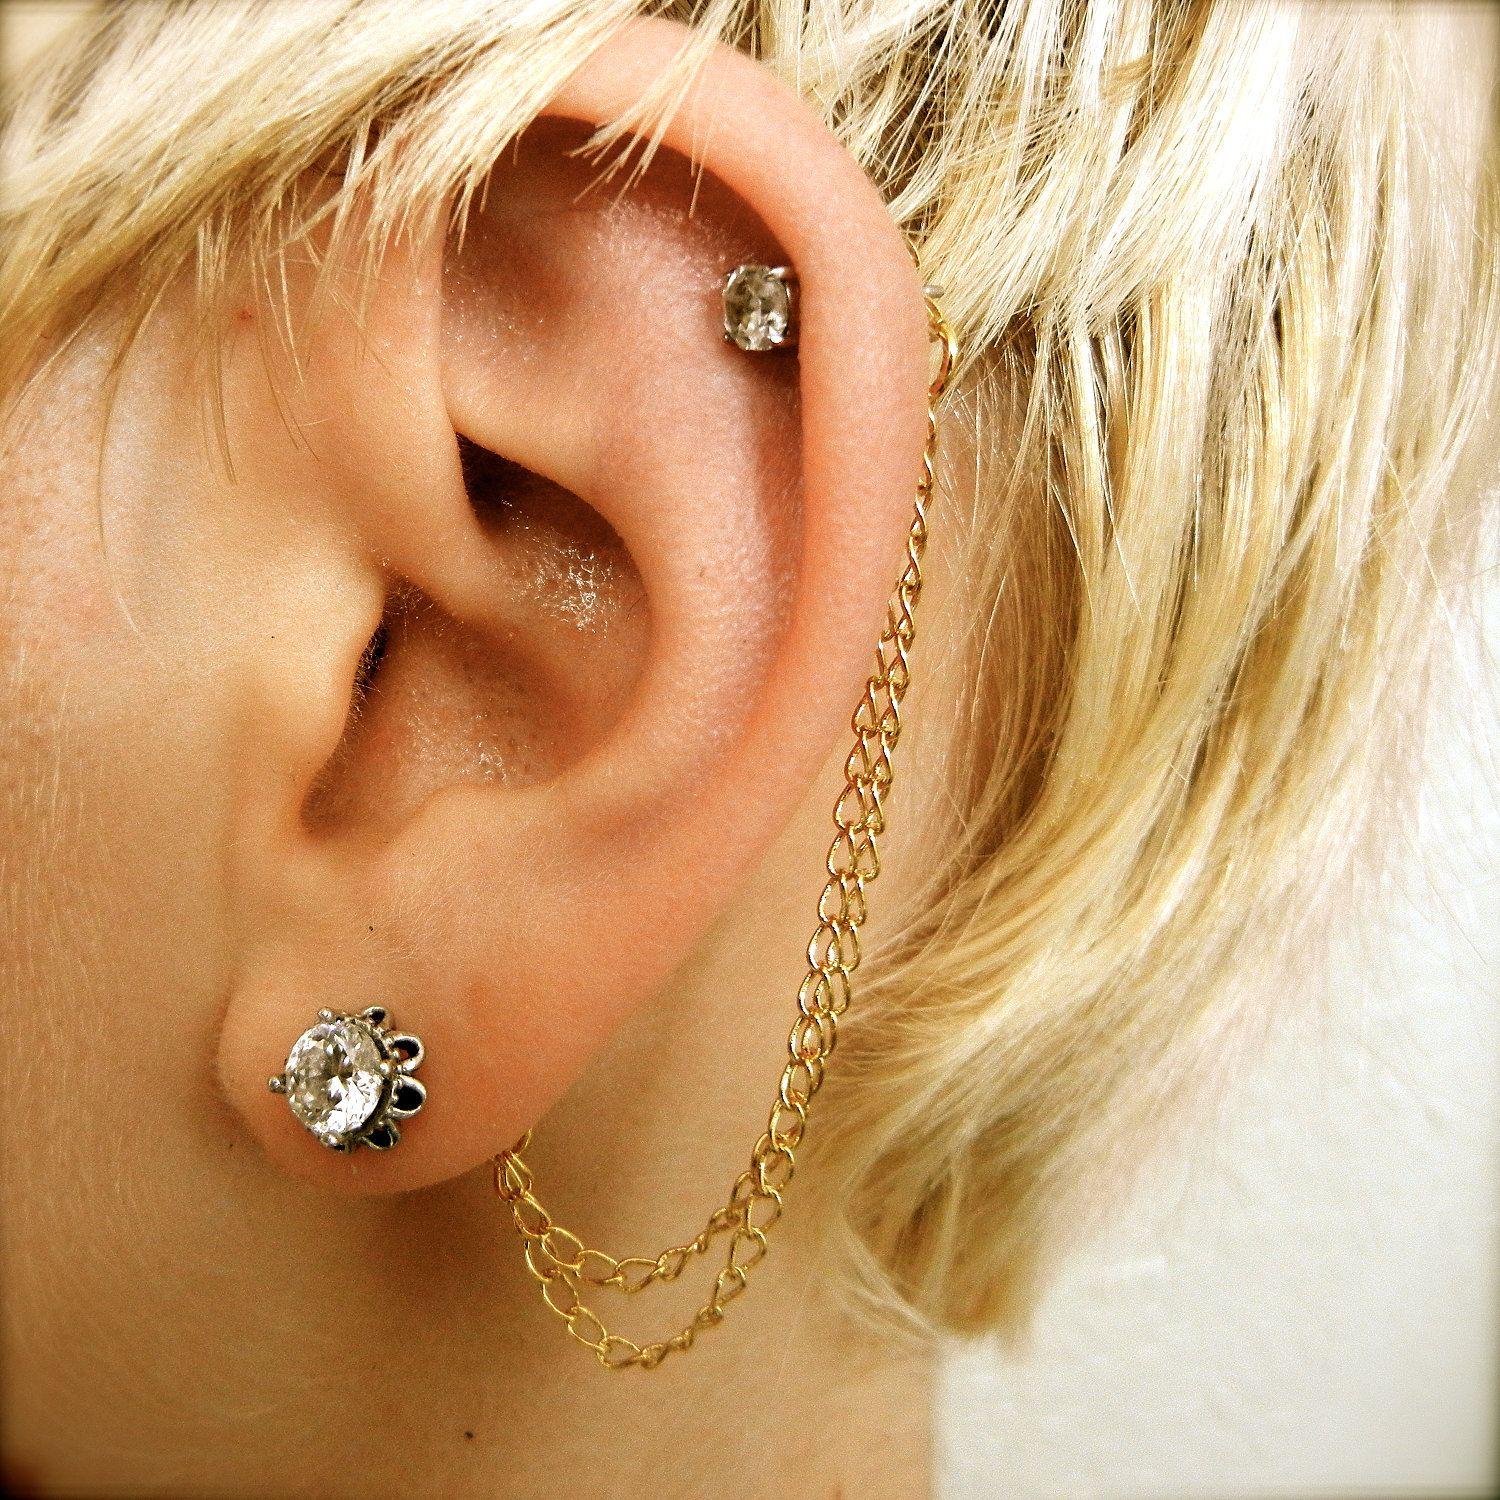 Double Cartilage Chain On Earring Backs Gold